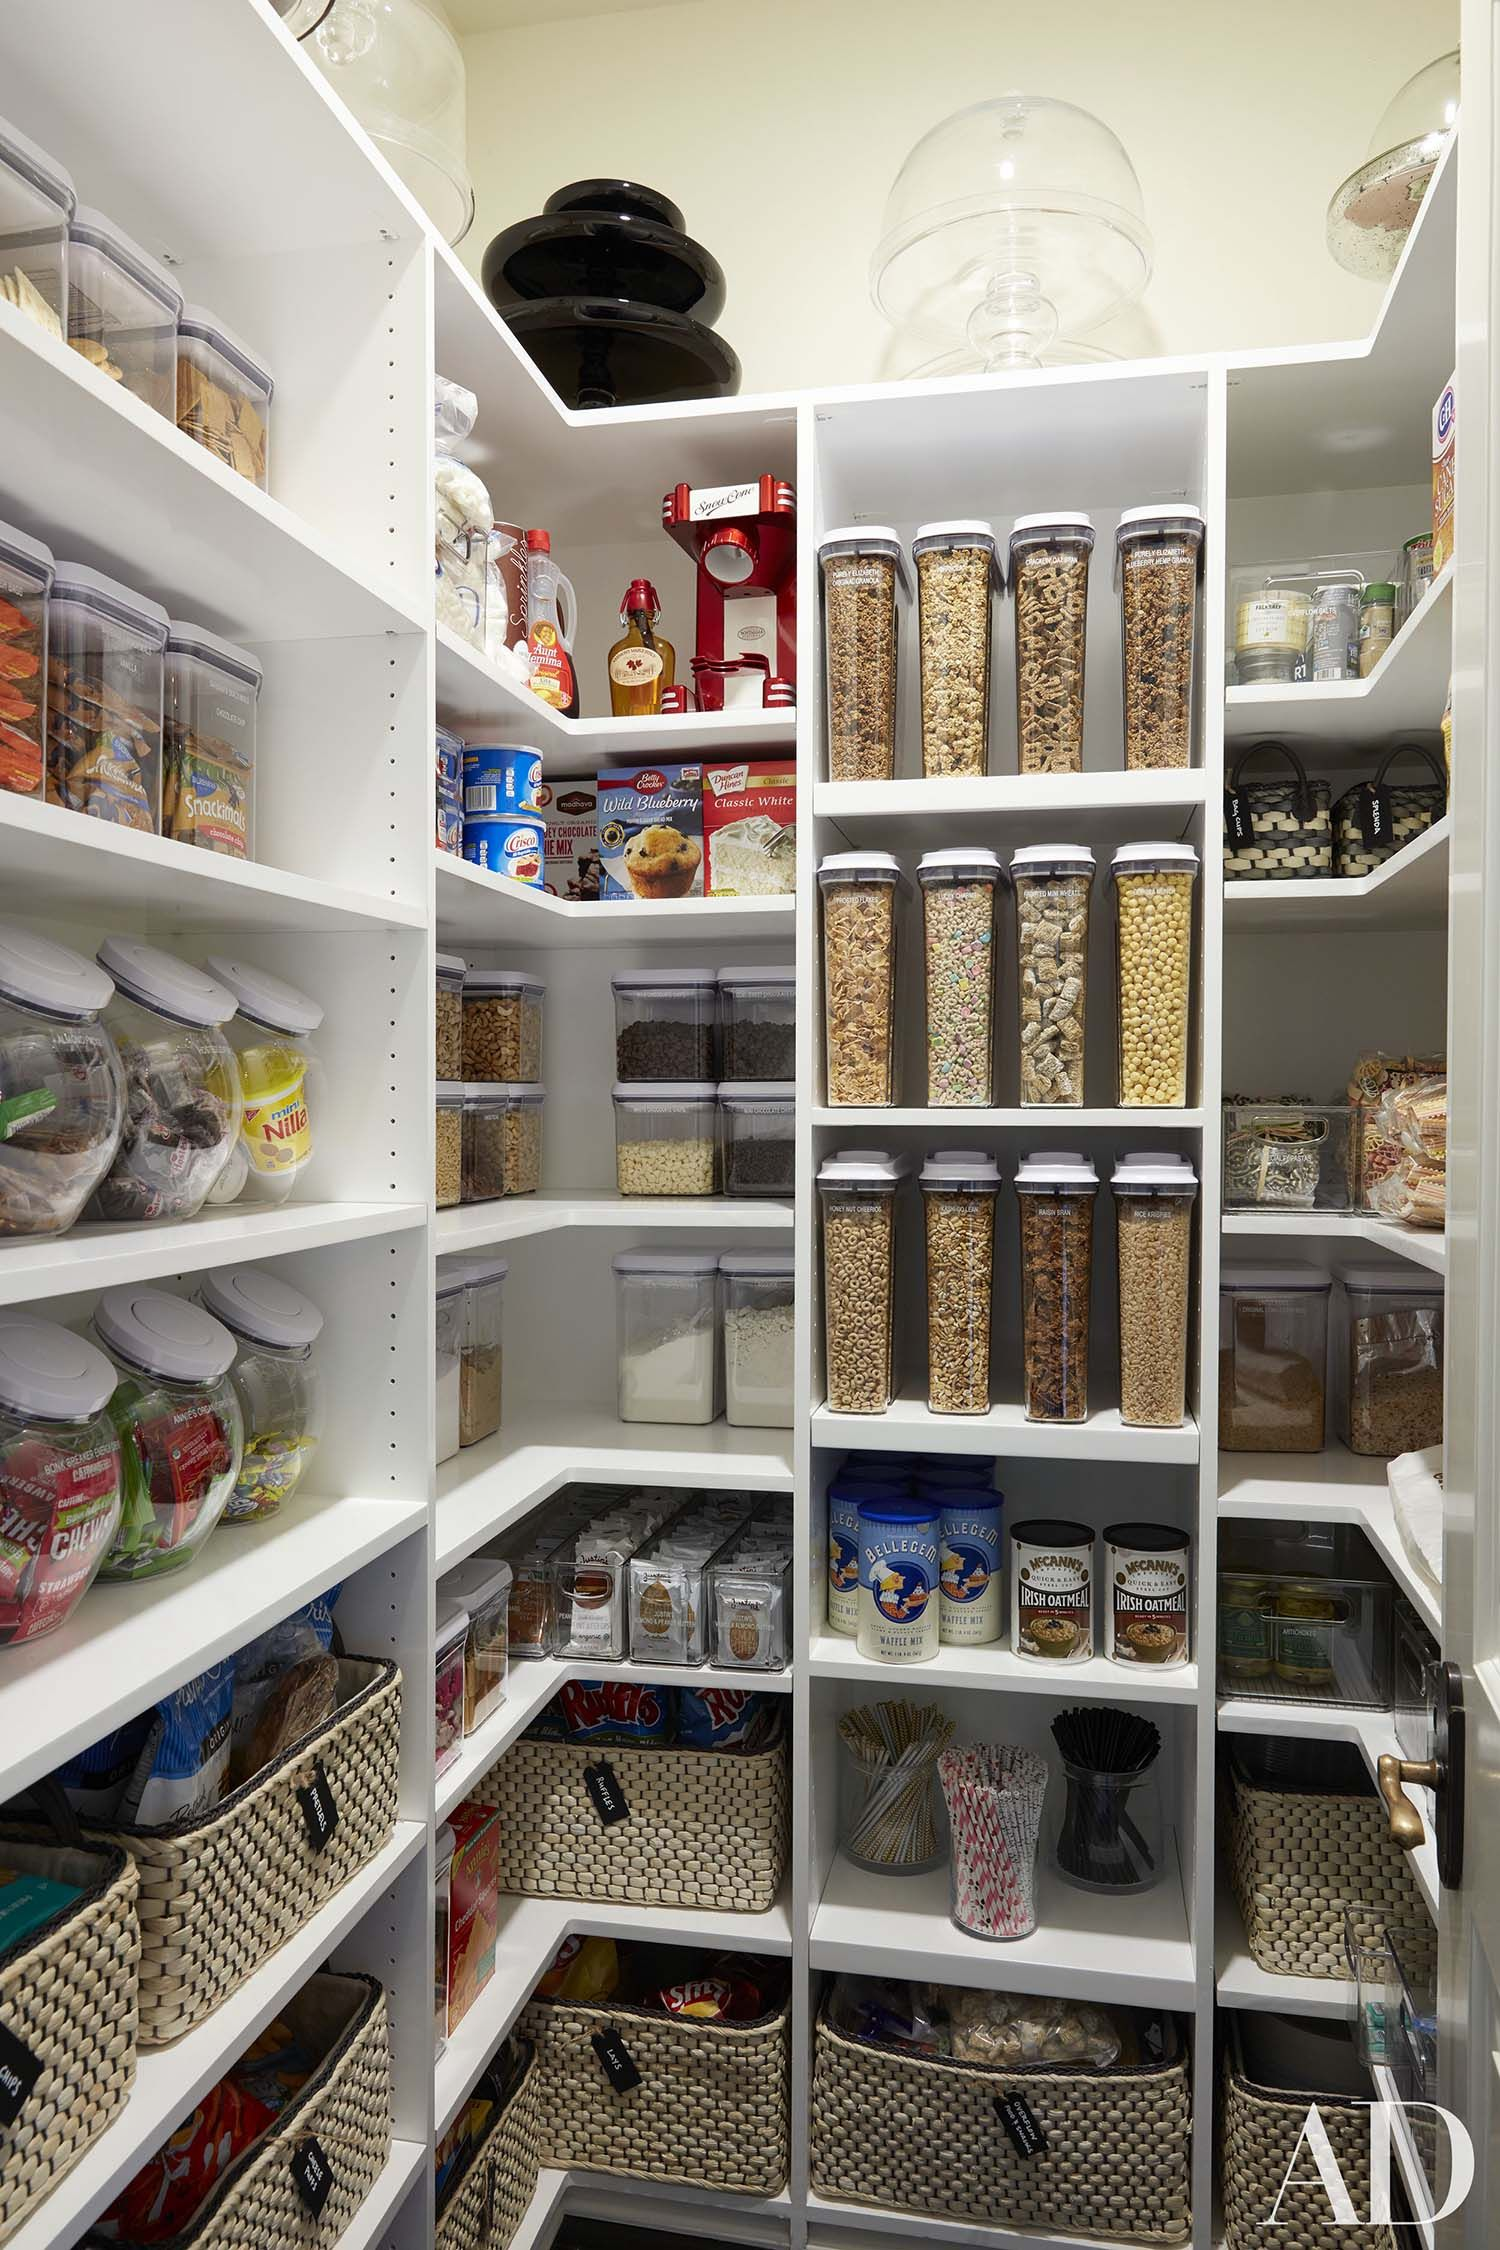 35 Clever ideas to help organize your kitchen pantry | Speisekammer ...